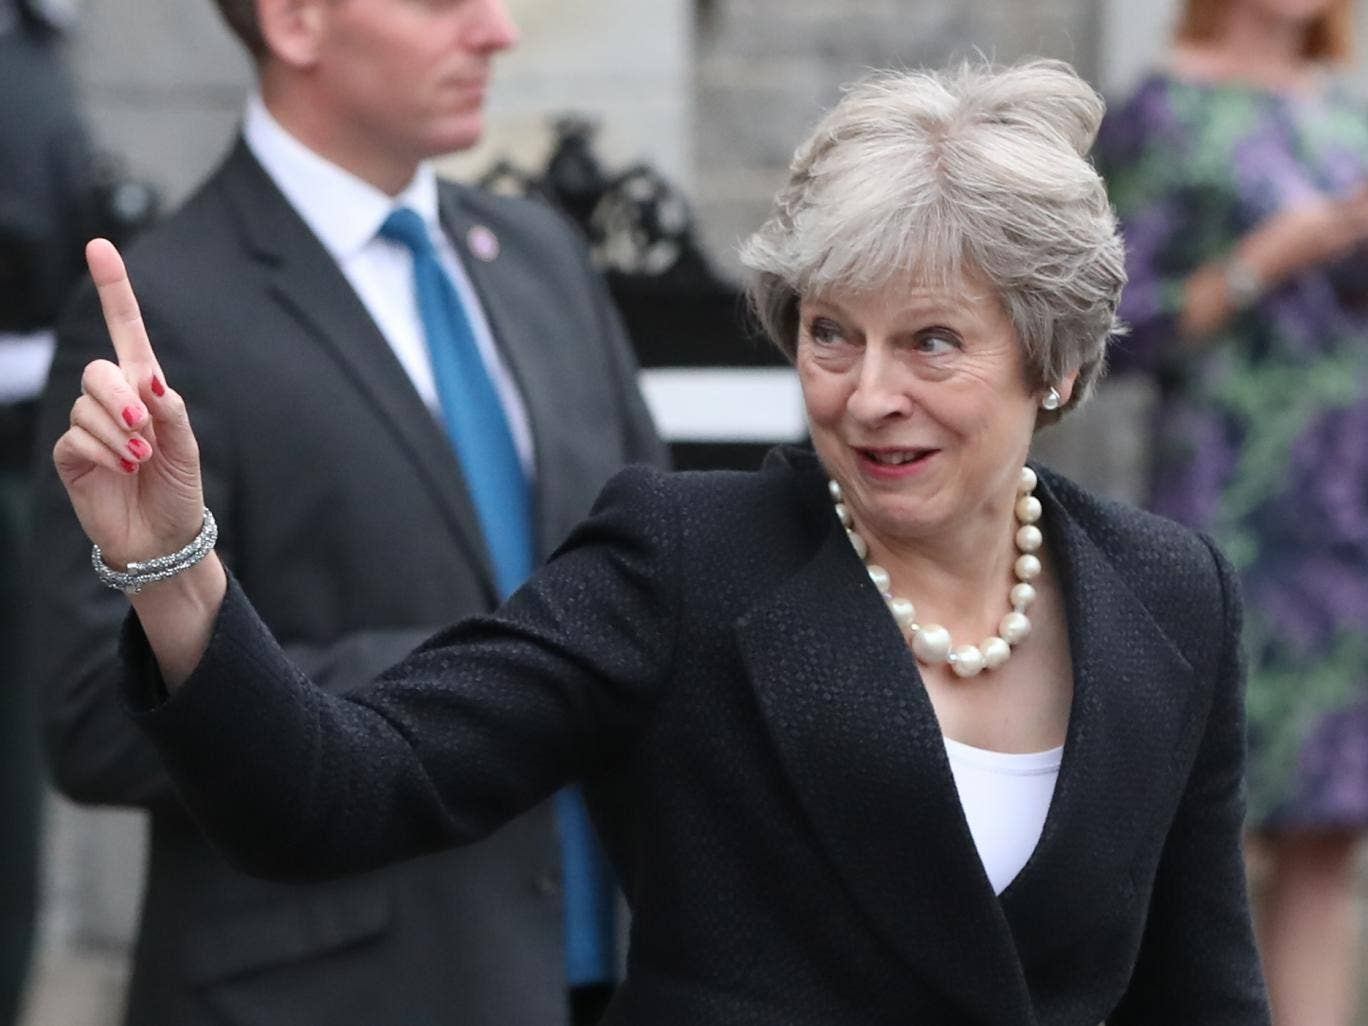 independent.co.uk - Benjamin Kentish - Michel Barnier to give EU's verdict on Chequers plan after Theresa May gives speech in Northern Ireland